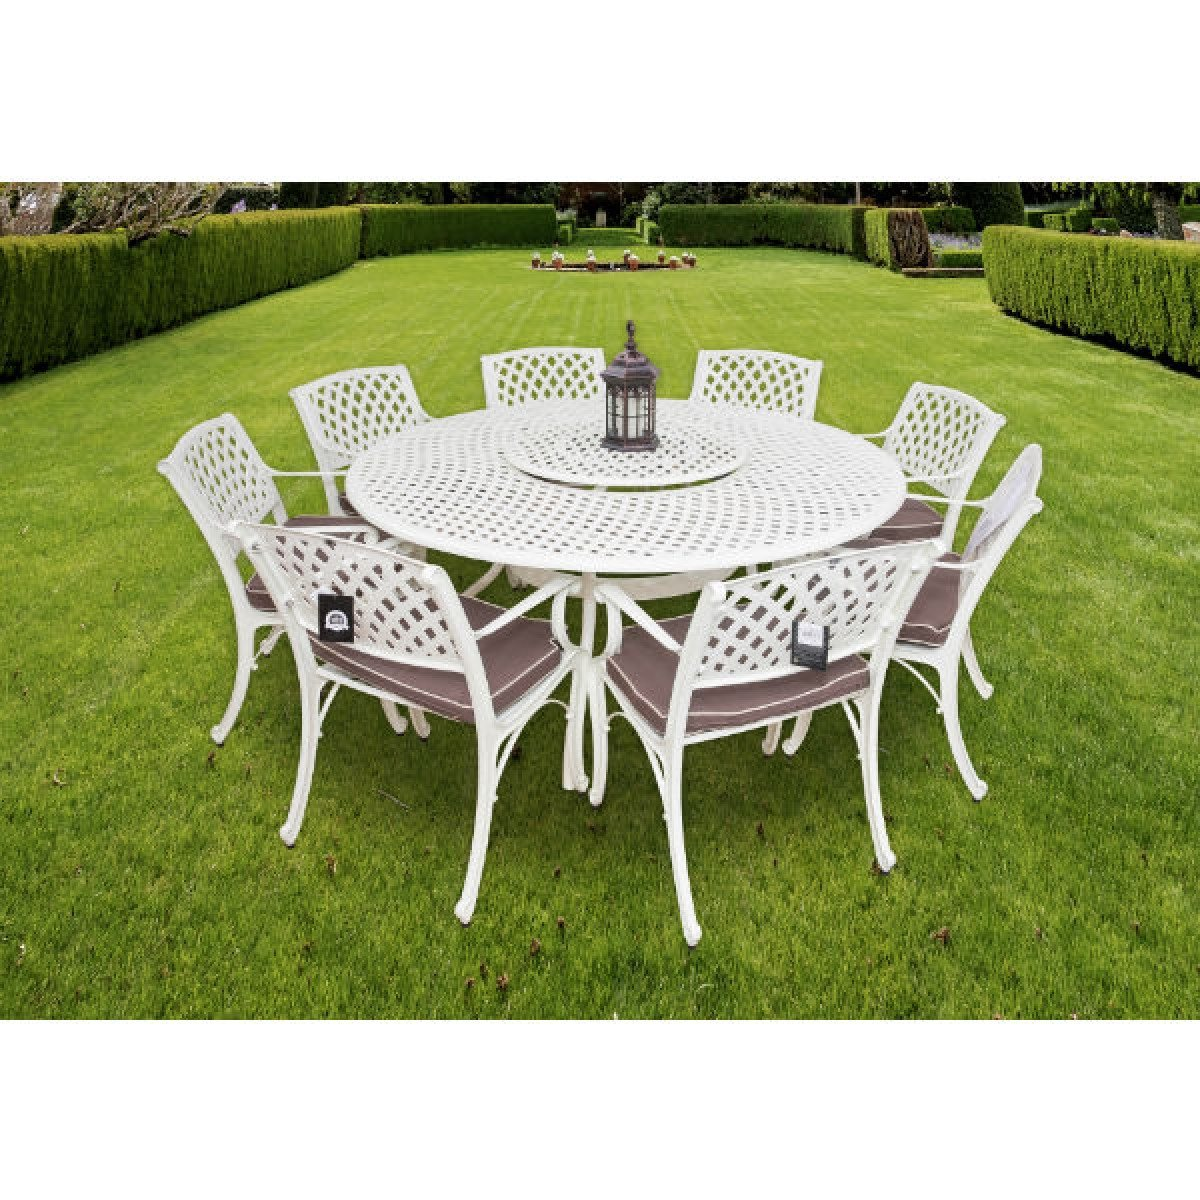 barcelona 8 seater lazy susan garden furniture set hammered cream - Garden Furniture 8 Seater